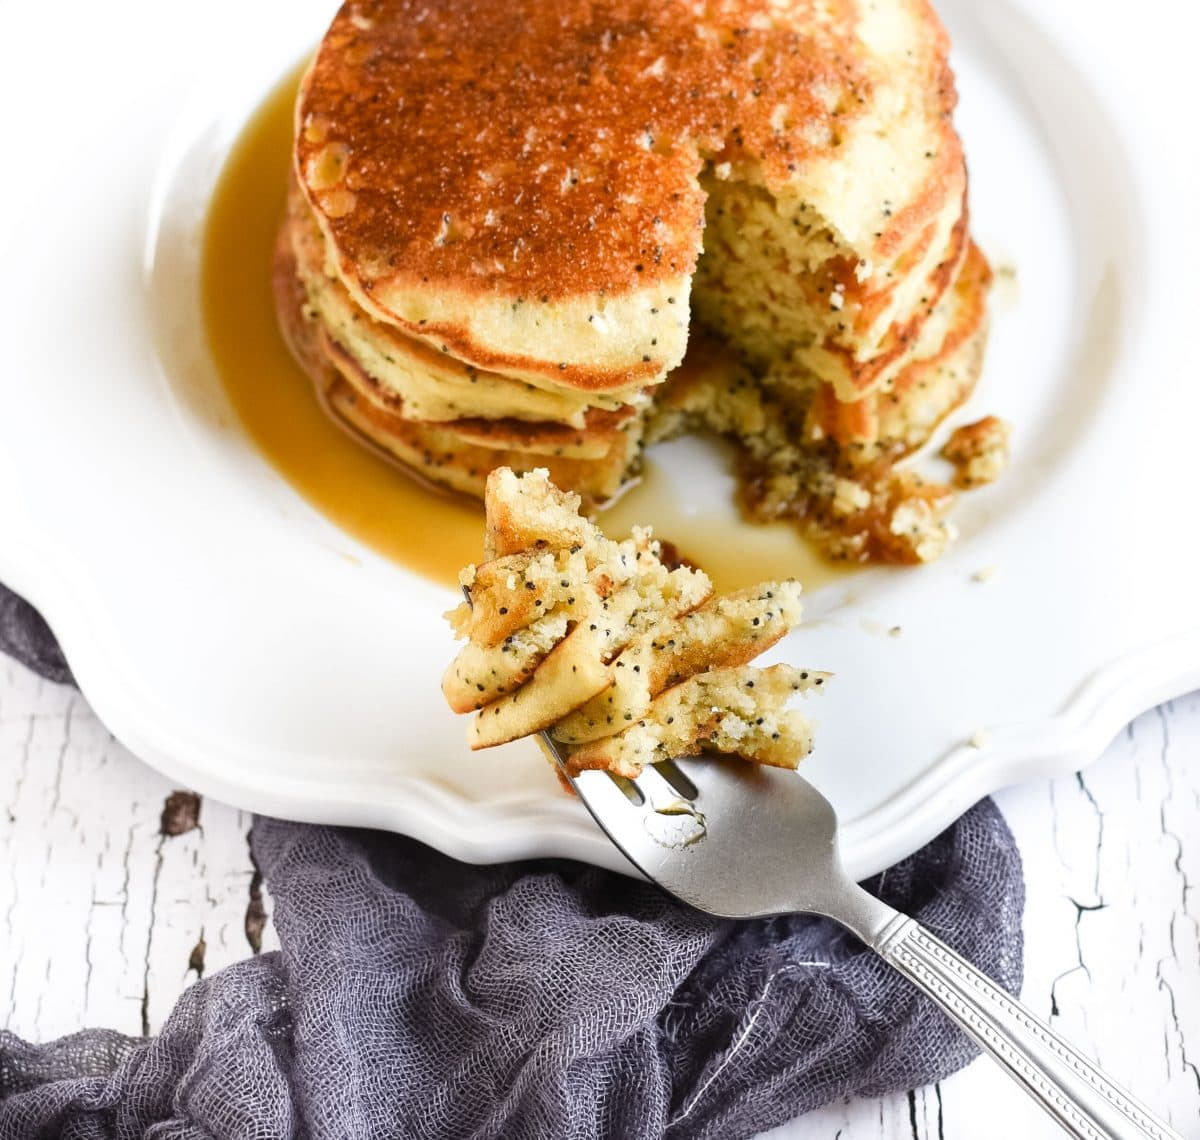 Picture of poppy seed pancakes with bite on fork